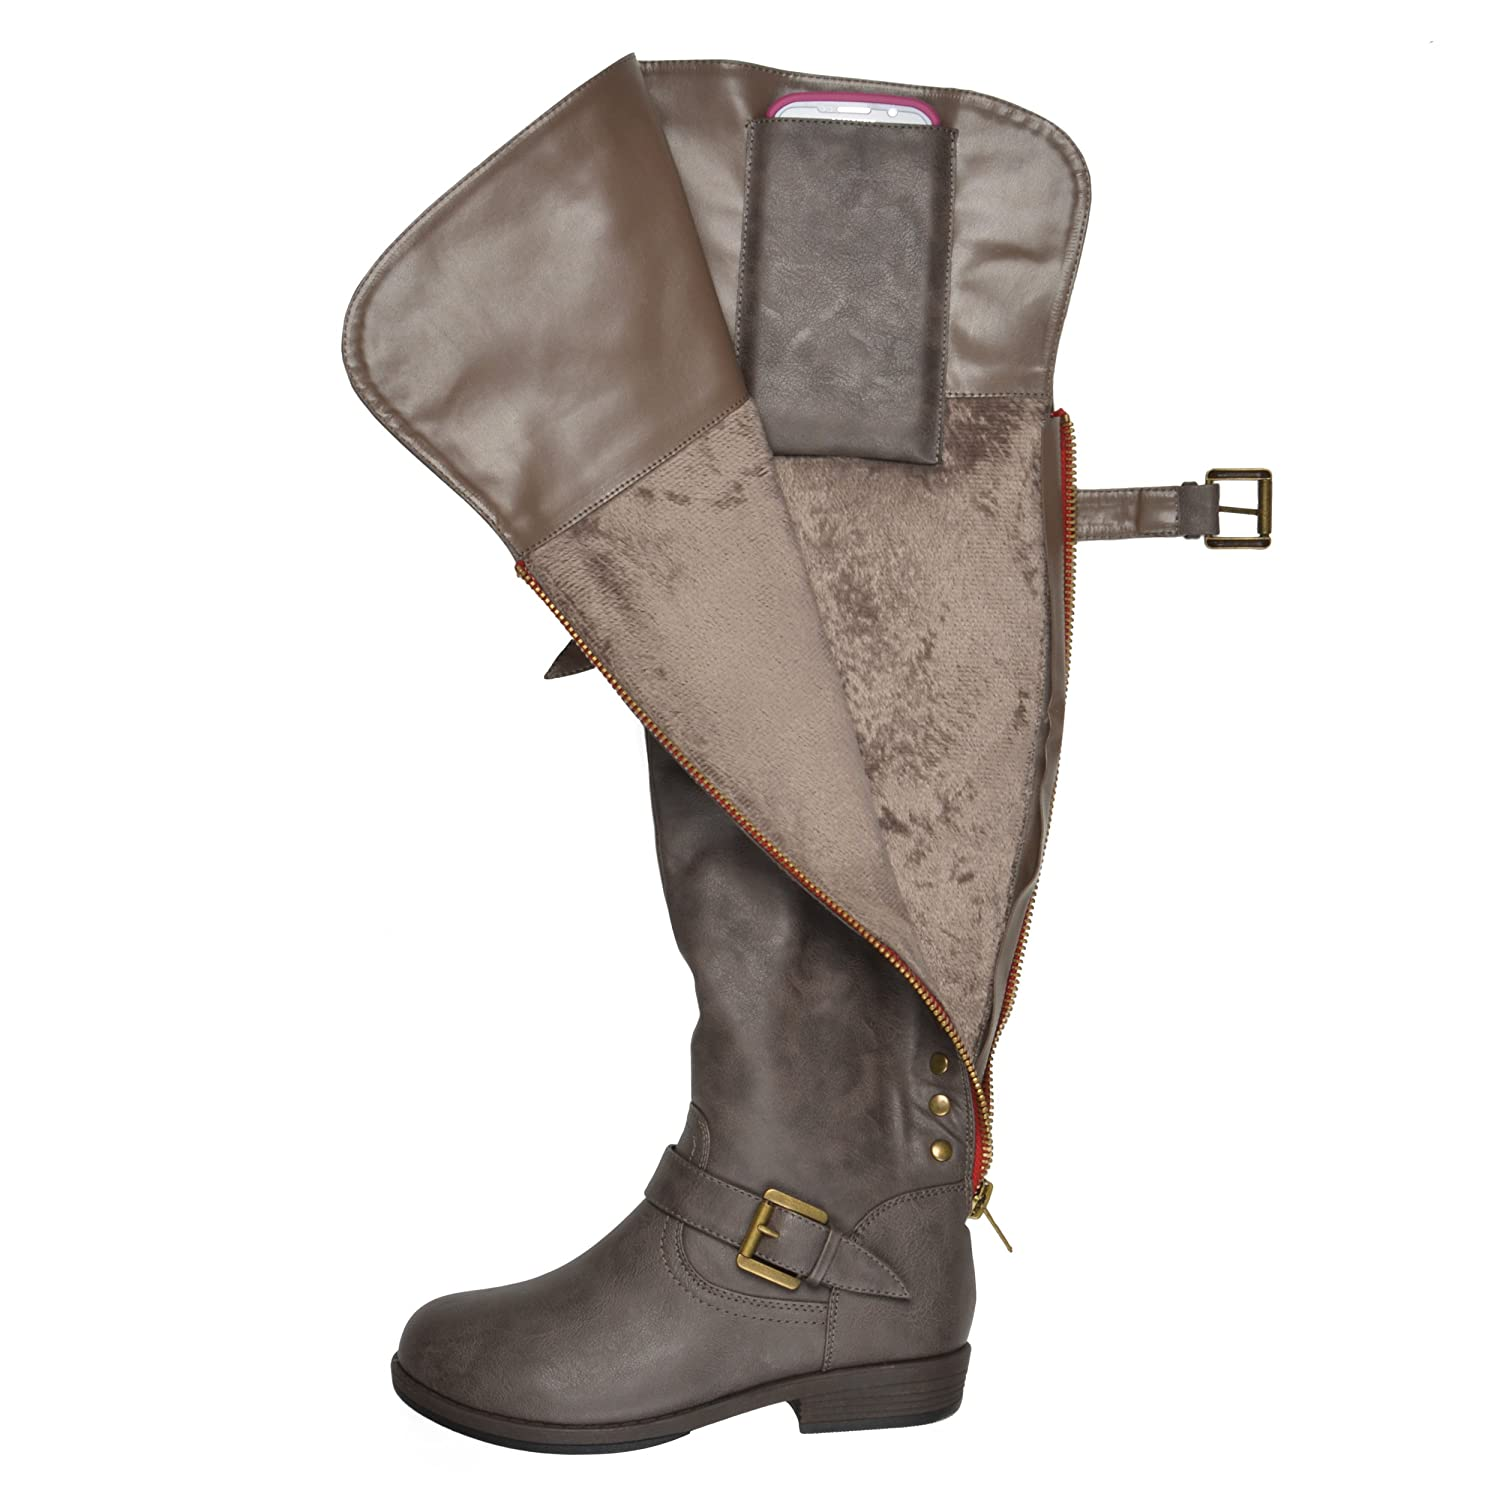 Journee Collection Women's Studded Over-the-knee Inside Pocket Buckle US|Taupe Boots B013X0VUUW 7 B(M) US|Taupe Buckle b1bb74